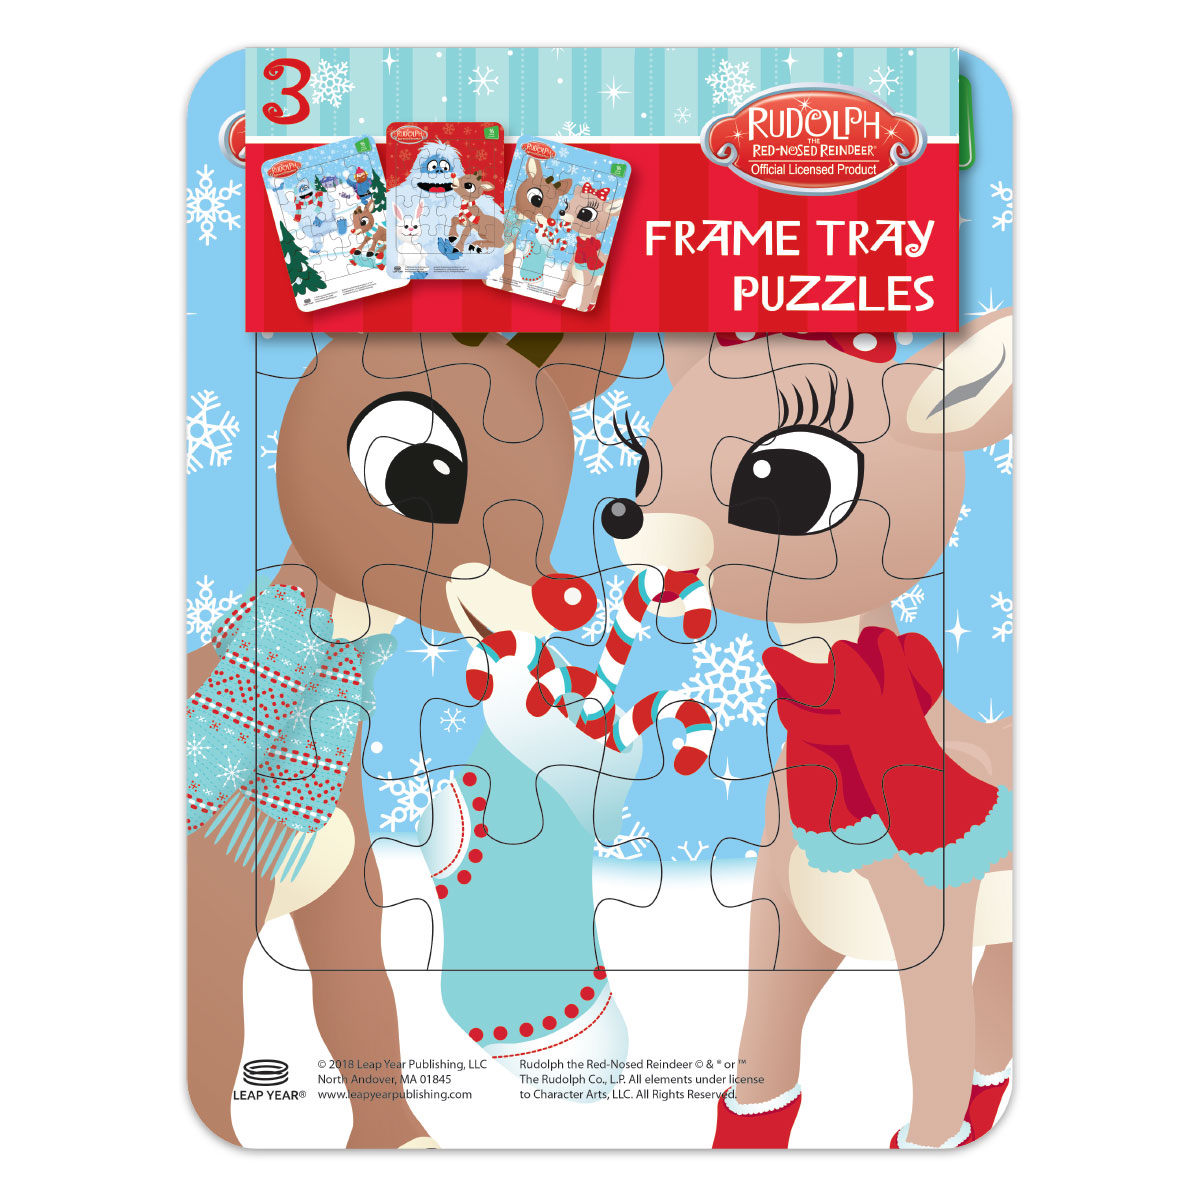 Rudolph frame tray puzzles